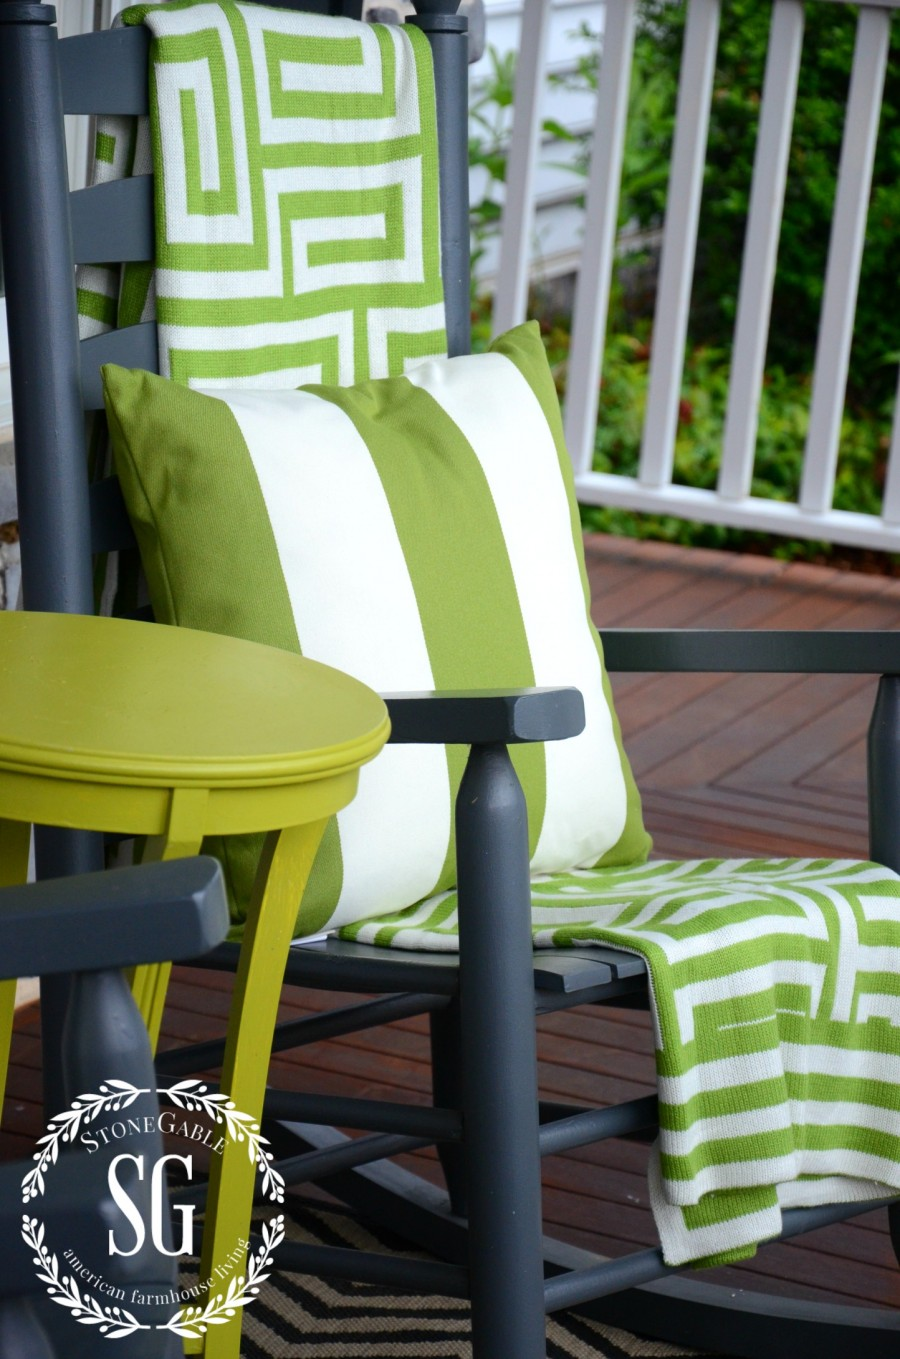 6 ESSENTIALS FOR CREATING AN OUTDOOR SPACE-add a throw-stonegableblog.com